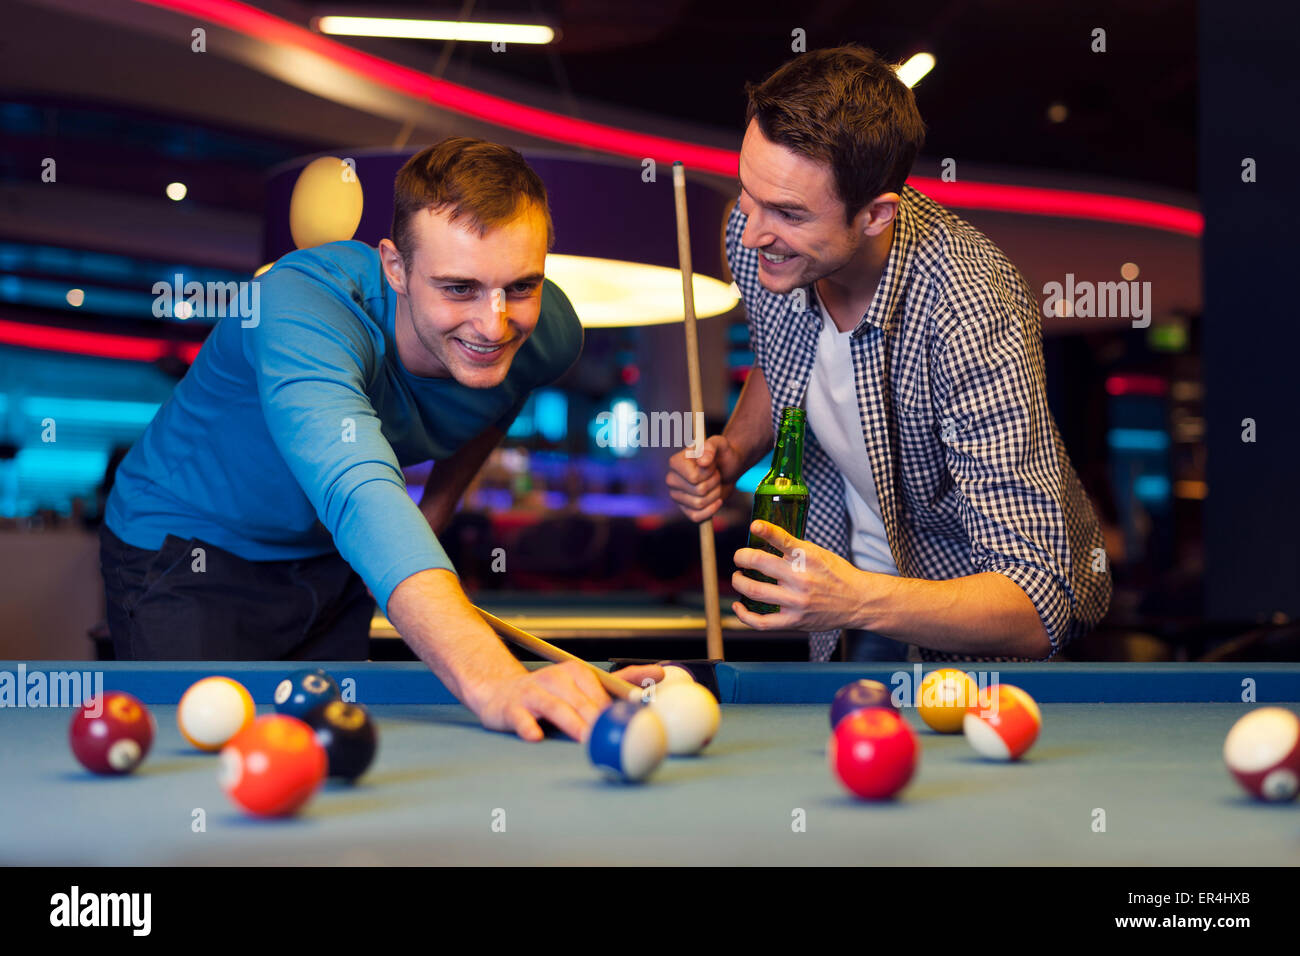 Friends playing pool at a bar - Stock Image